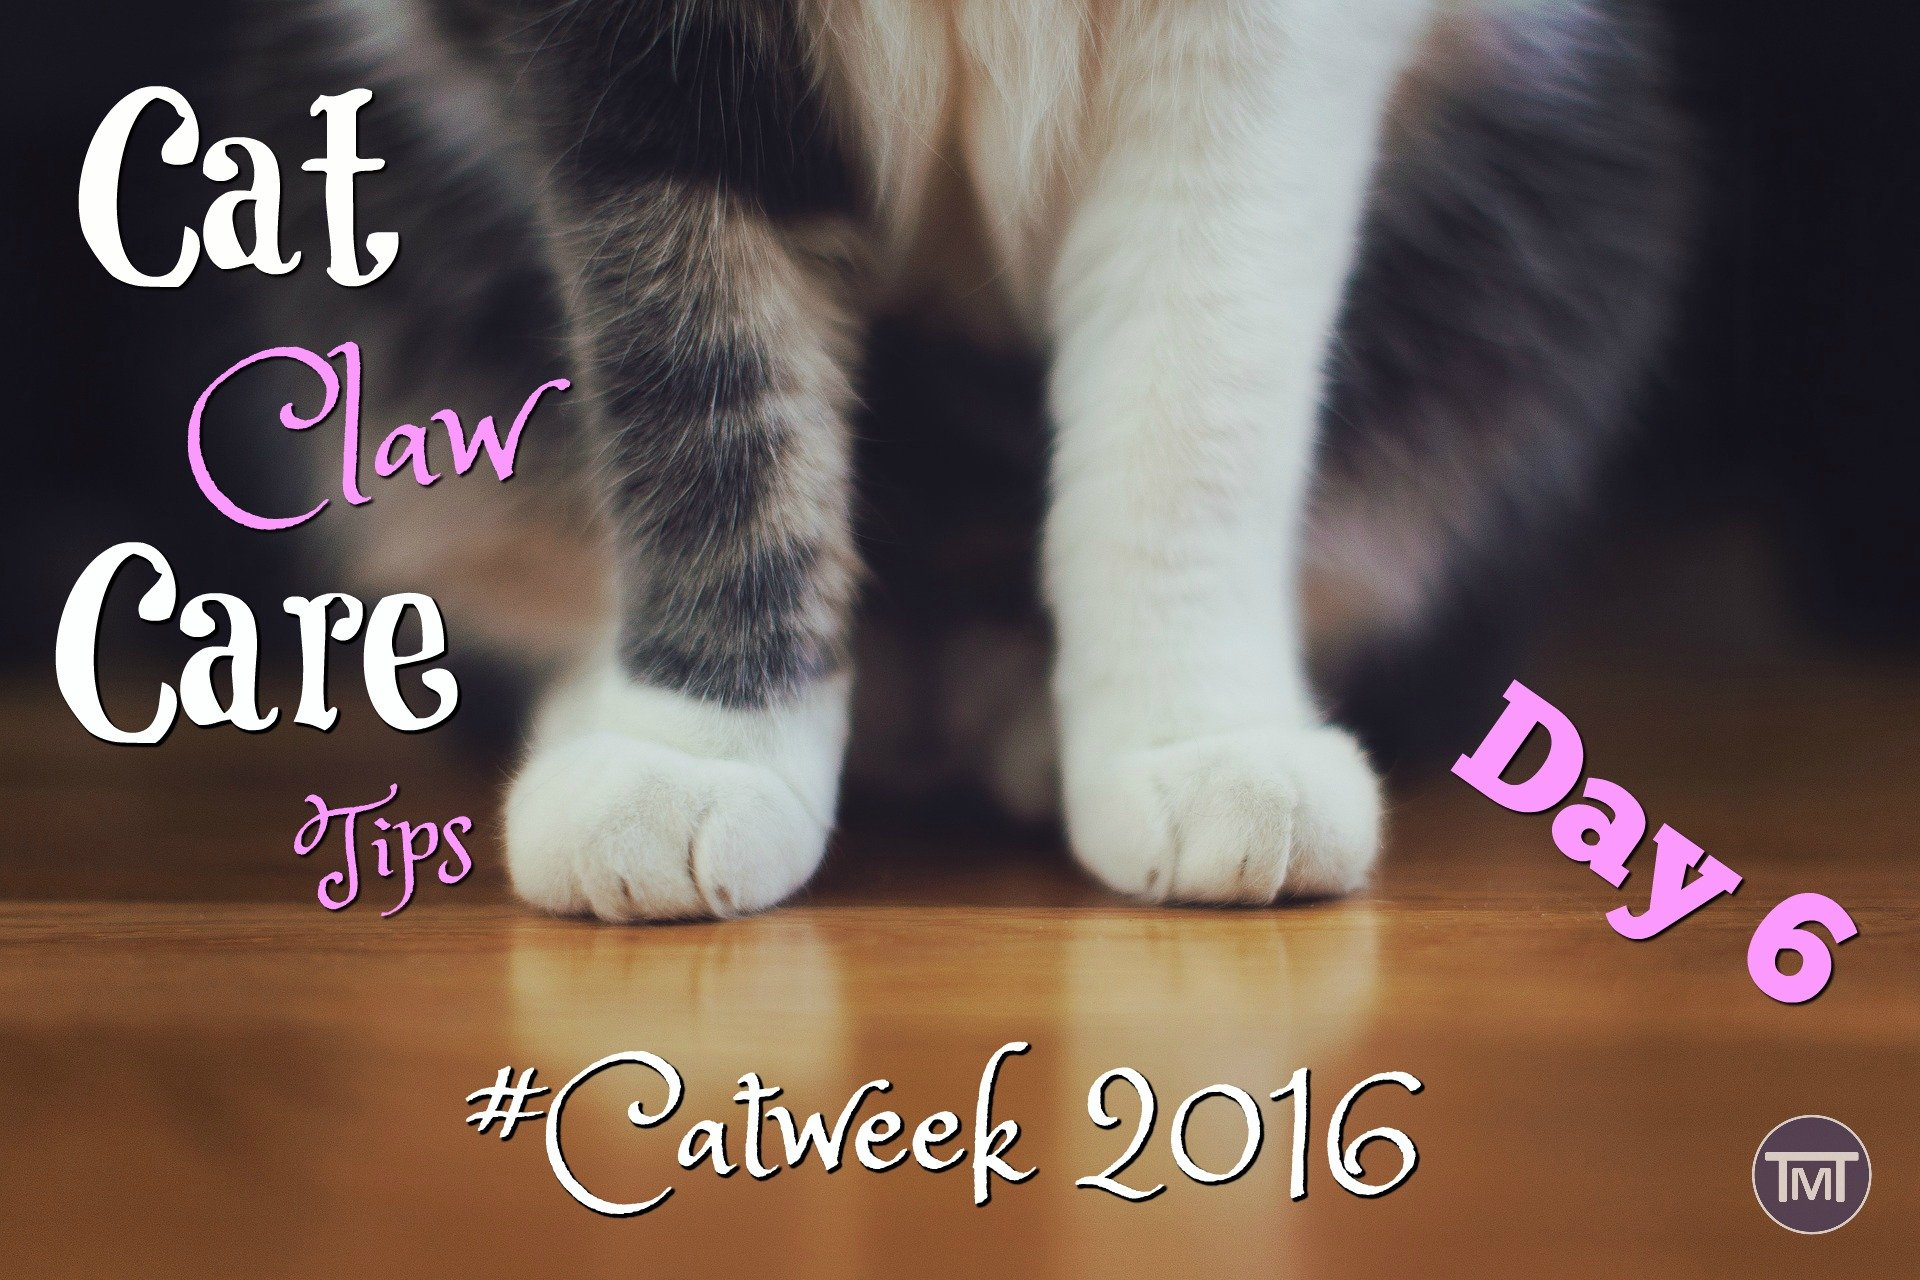 Cat Claw Care Tips | The Mummy Toolbox